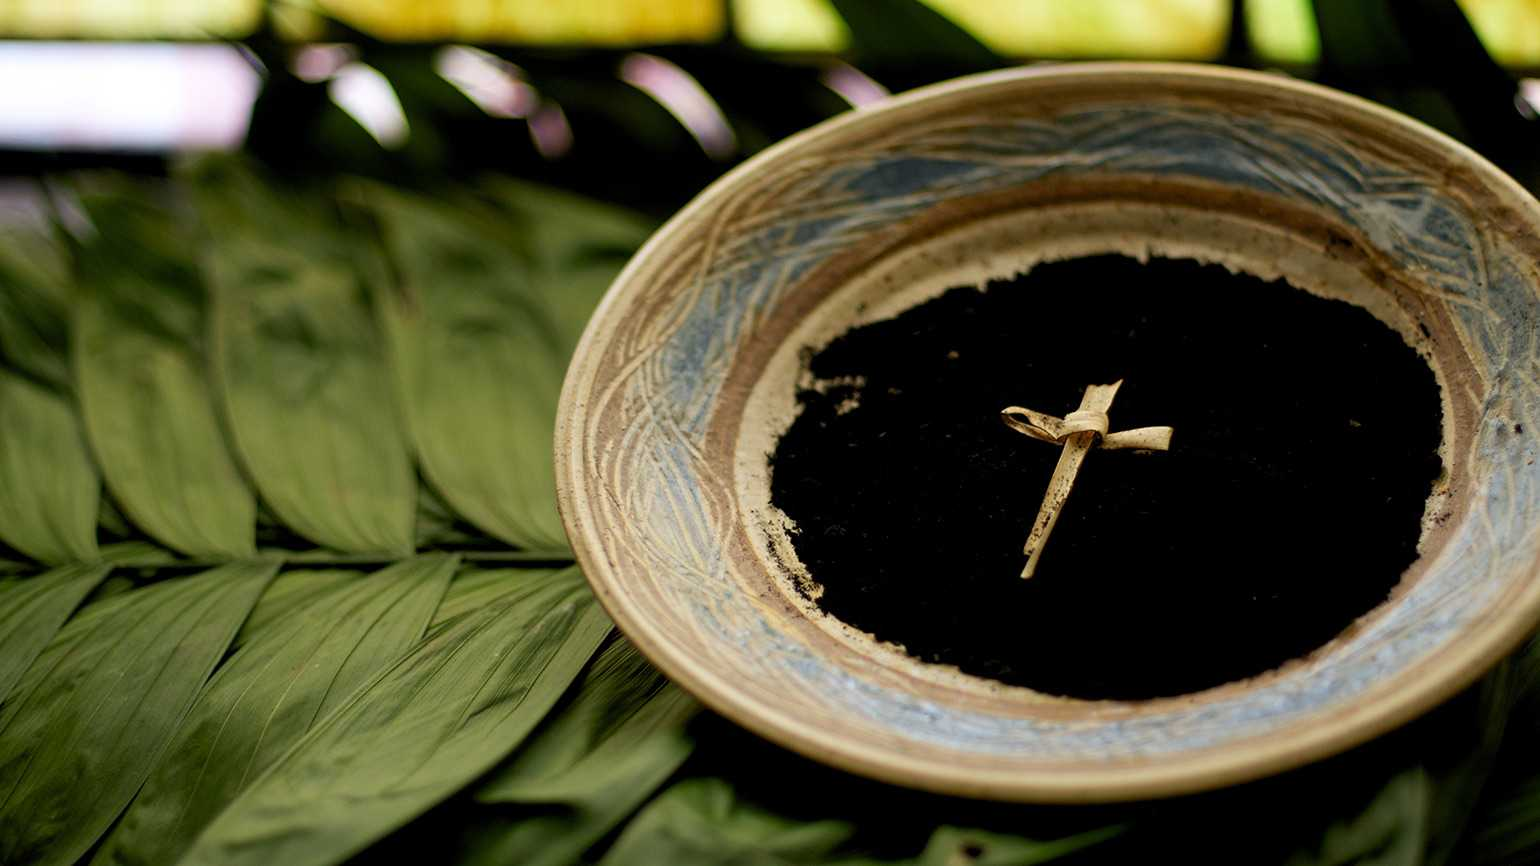 A bowl of ashes for Ash Wednesday, resting on a bed of palm branches